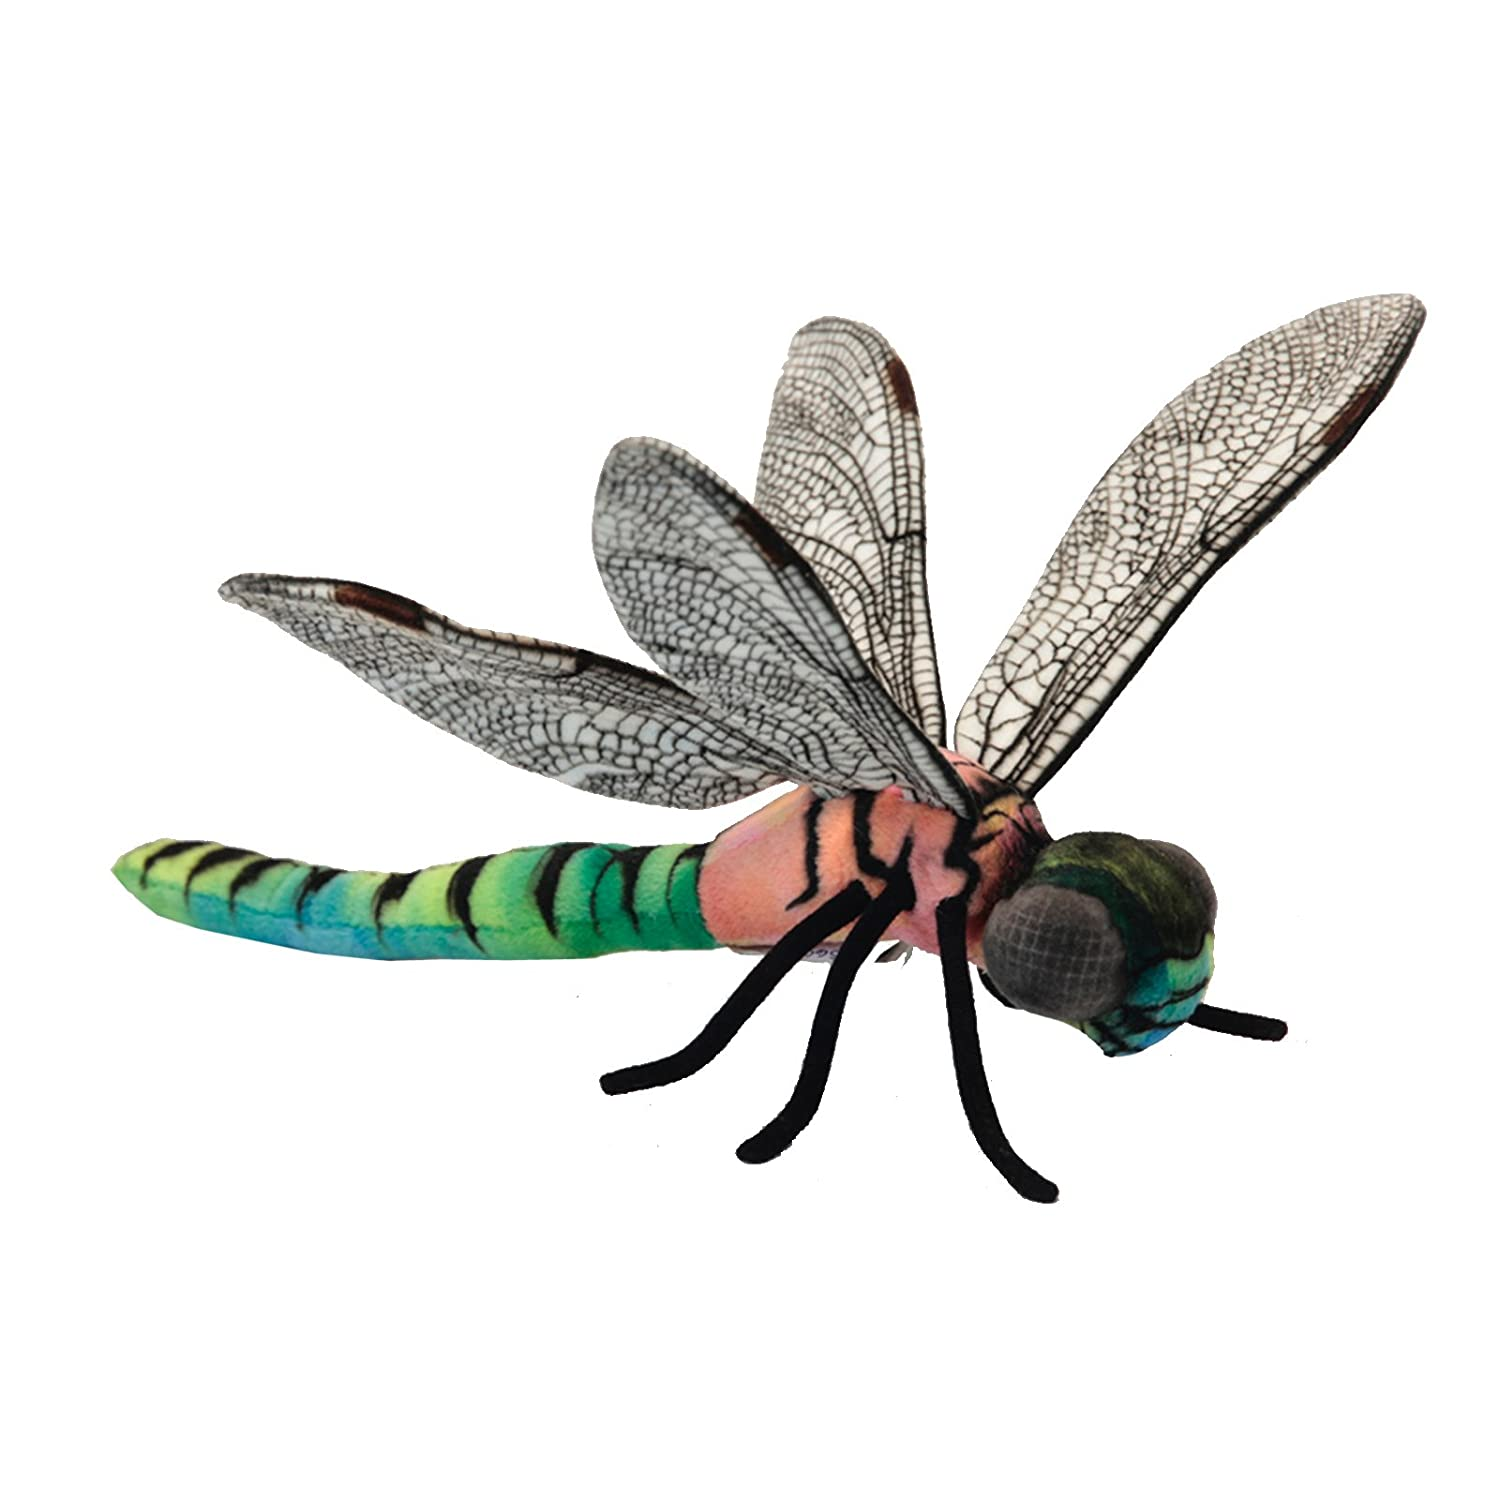 Dragonfly Plush Toy Unik dan Kekinian